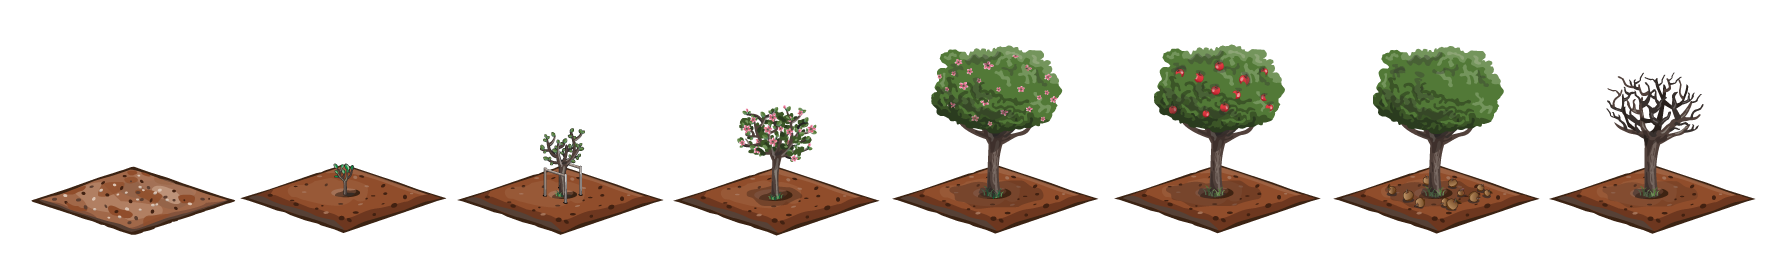 apple tree growth stages by eatmemtfckr